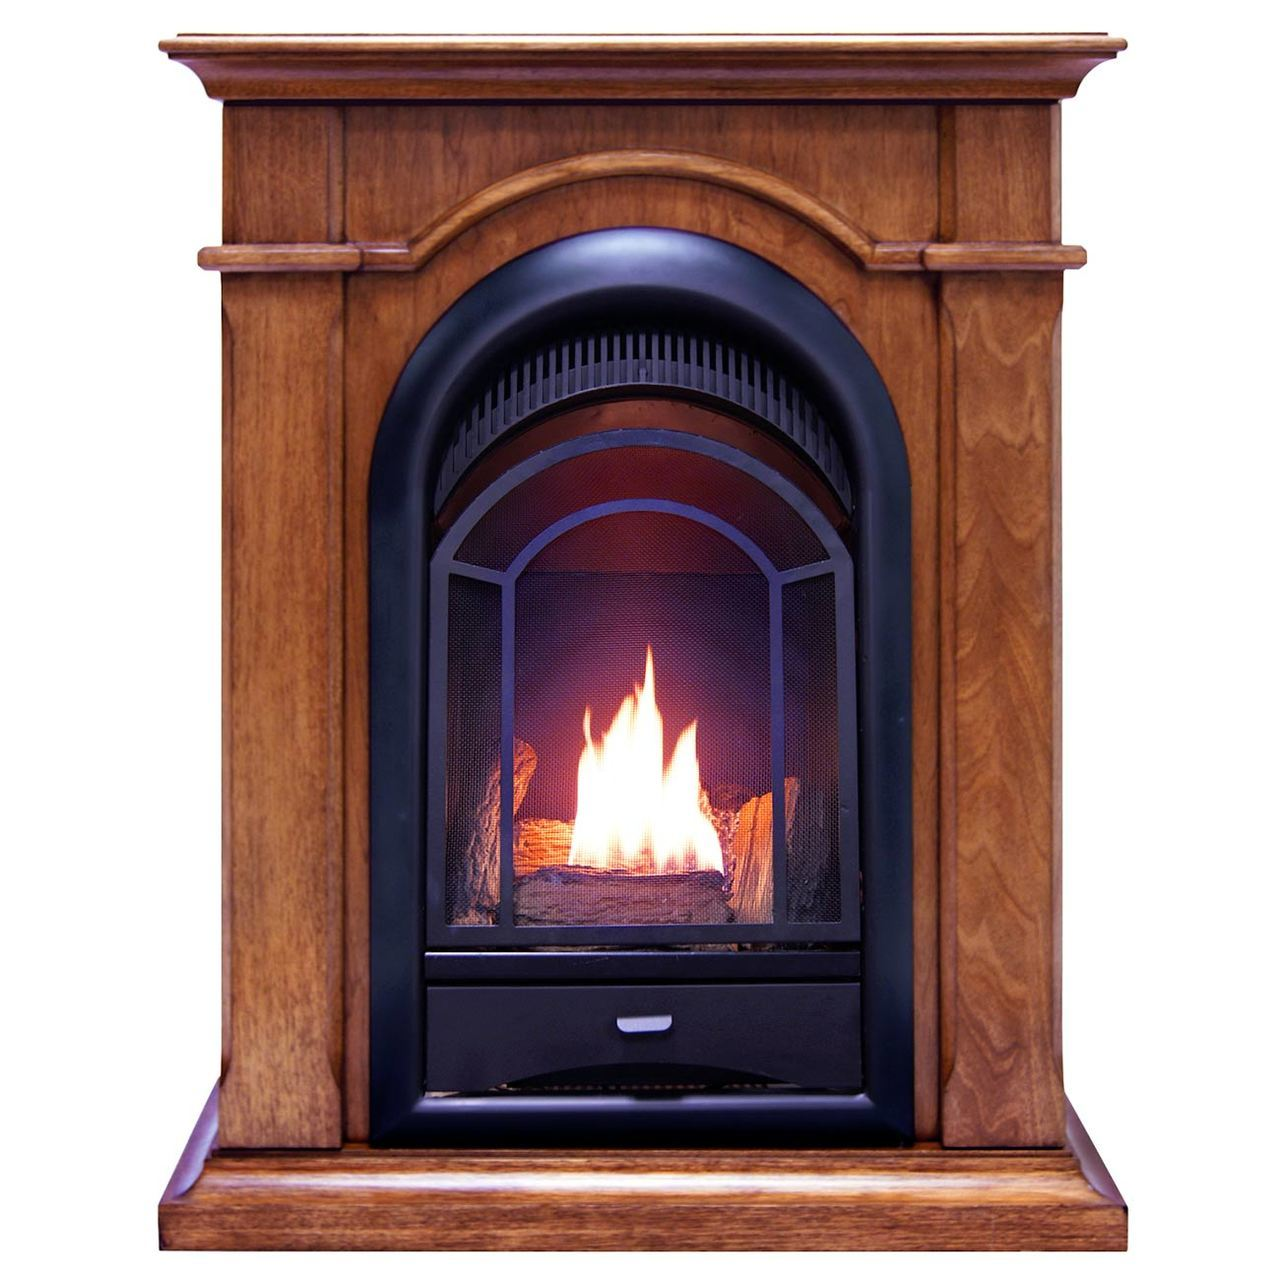 ProCom FS100T-AS Ventless Fireplace System 10K BTU Duel Fuel Thermostat Insert and Apple Spice... by